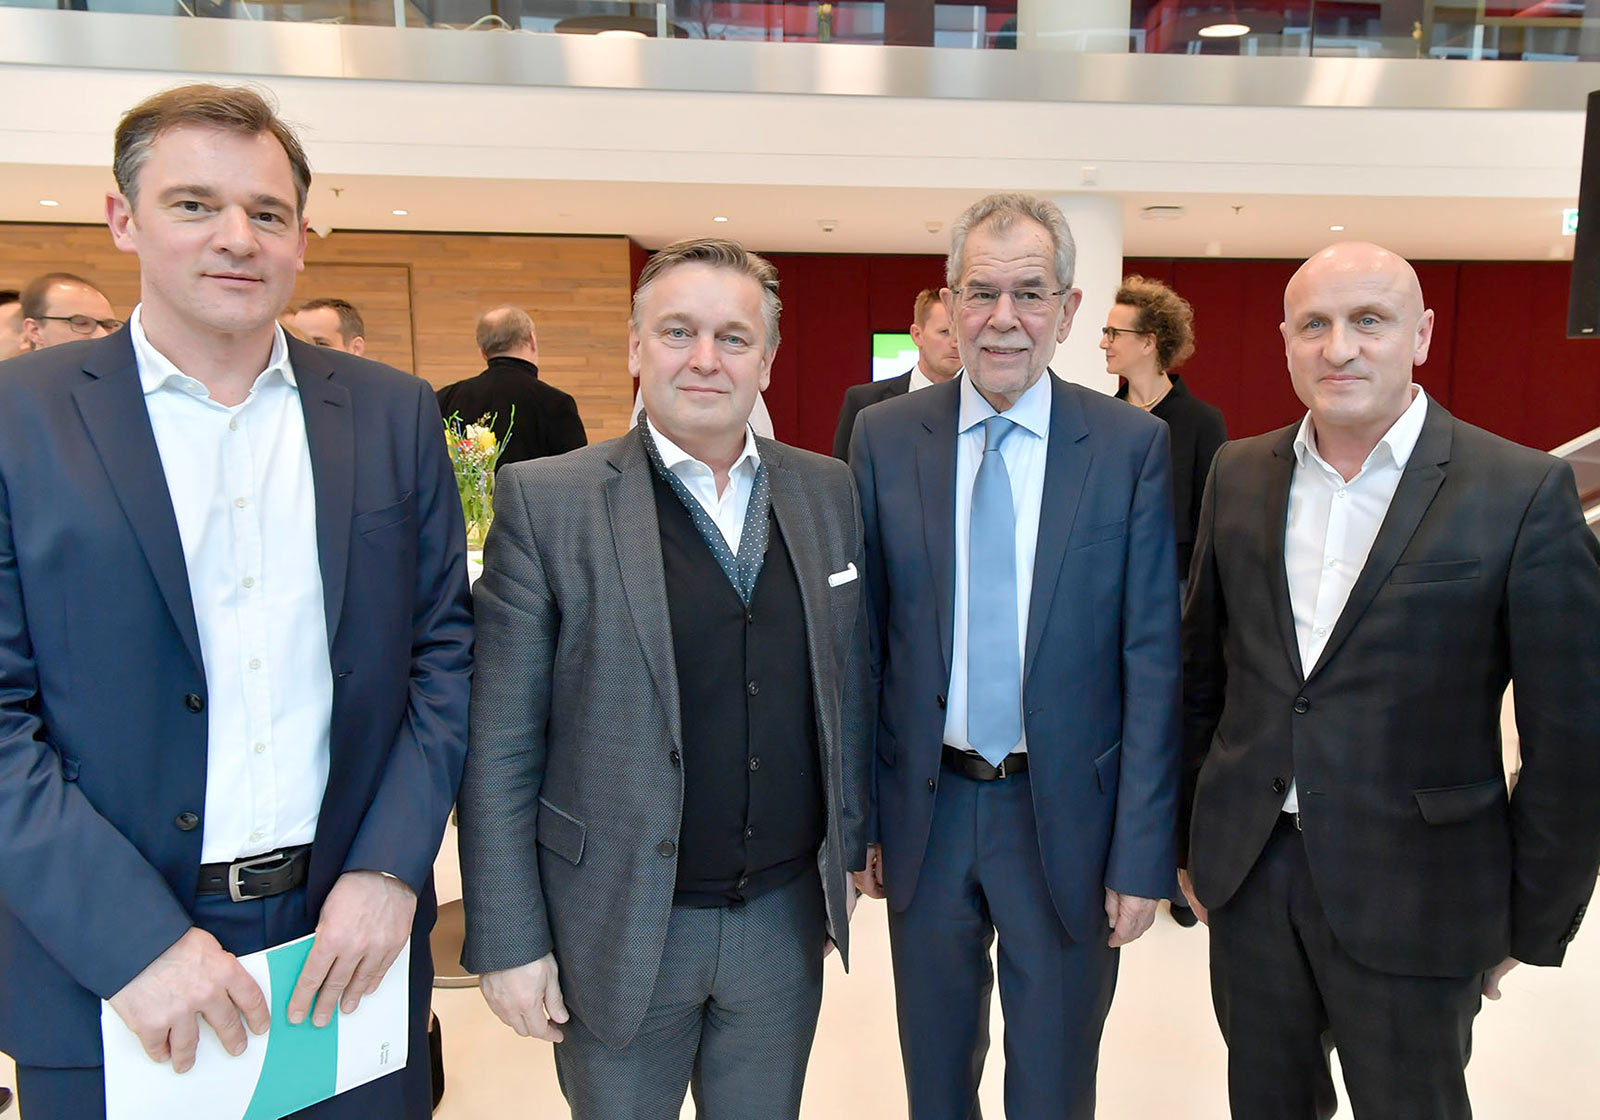 From left: Lead Project Manager Andreas Aichholzer, ATP Vienna, Head of Design Dario Travas, ATP Vienna, Federal President Alexander Van der Bellen, Managing Director Horst Reiner, ATP Vienna. Photo: IMP/Robert Herbst